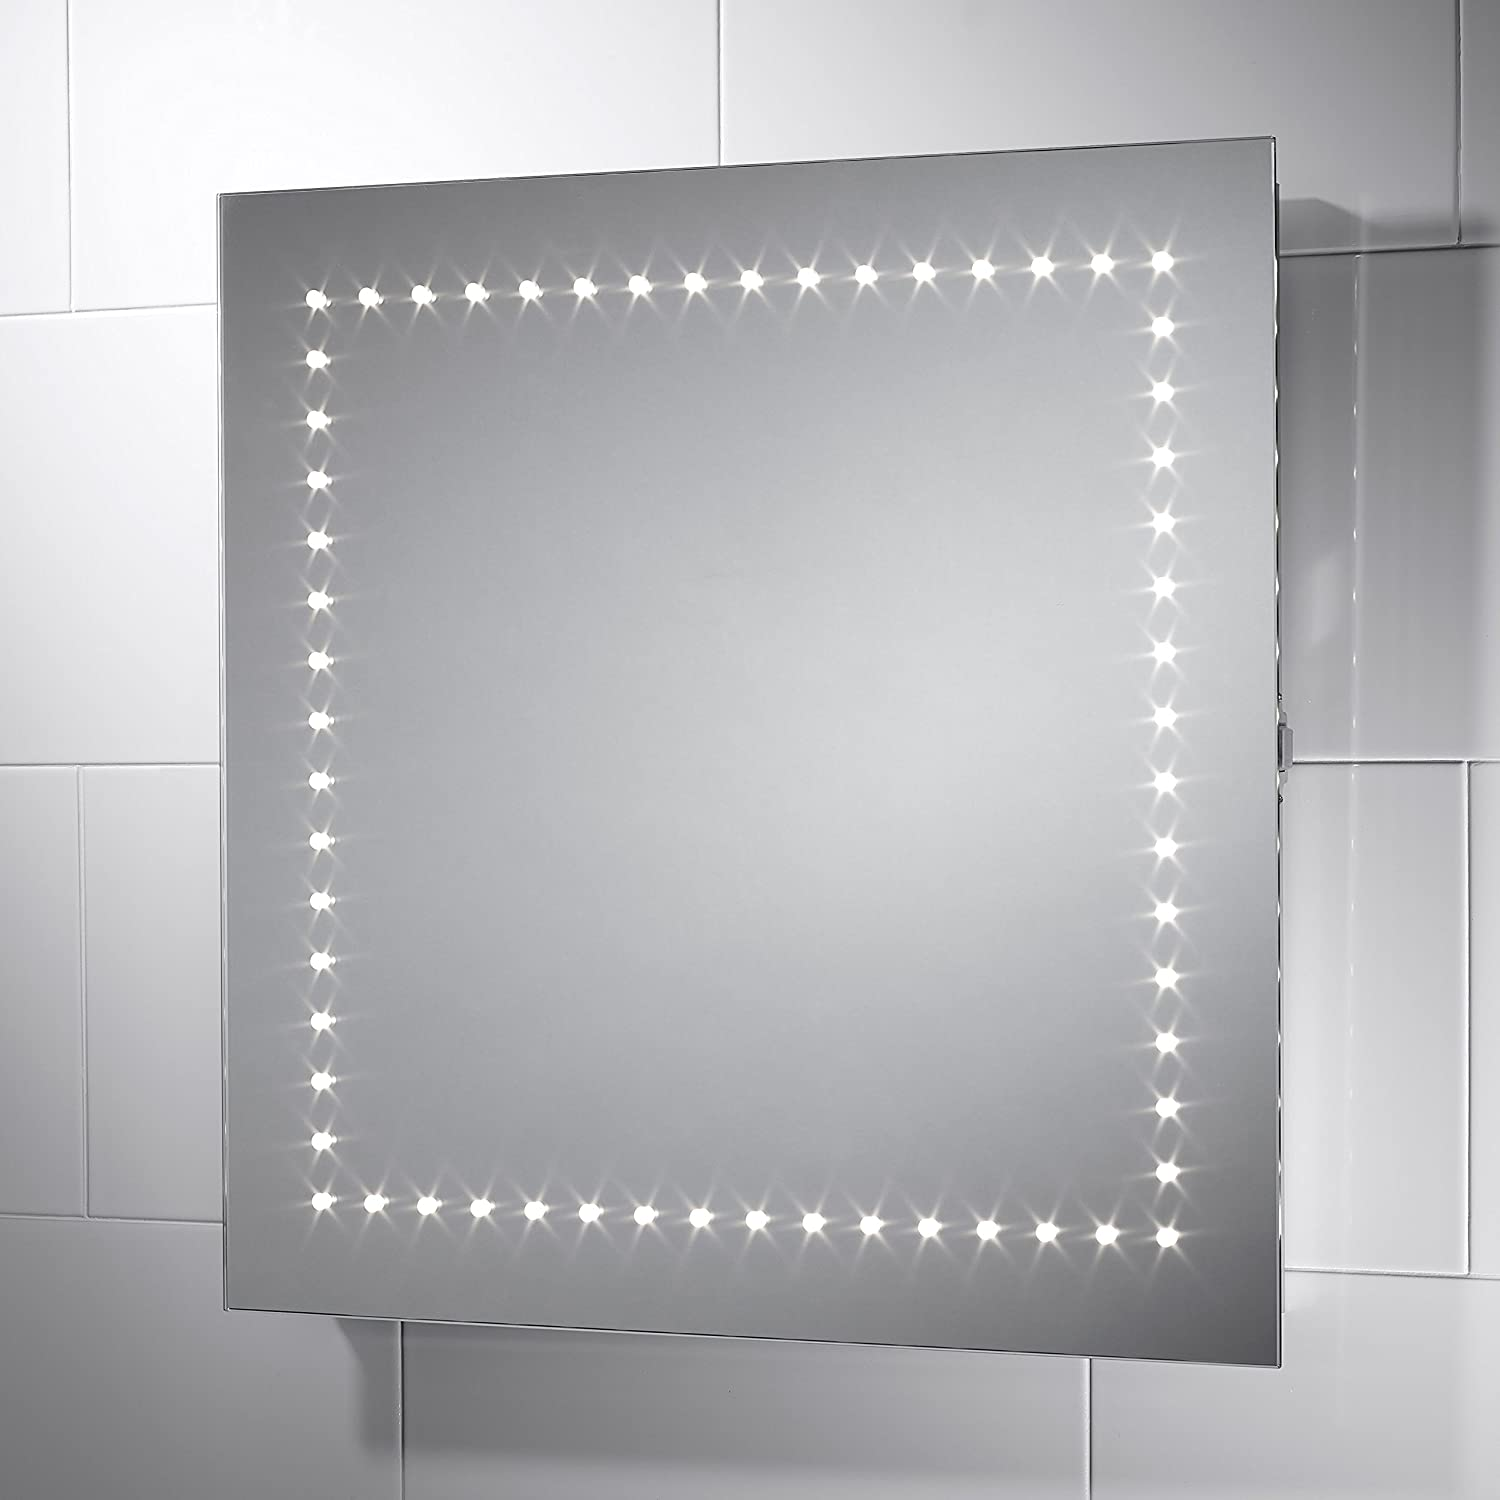 Pebble Grey Square Savio LED Illuminated Bathroom Mirror Size 600mmW X 600mmH With Infra Red Sensor Switch Dual Voltage Shaver Socket And Full